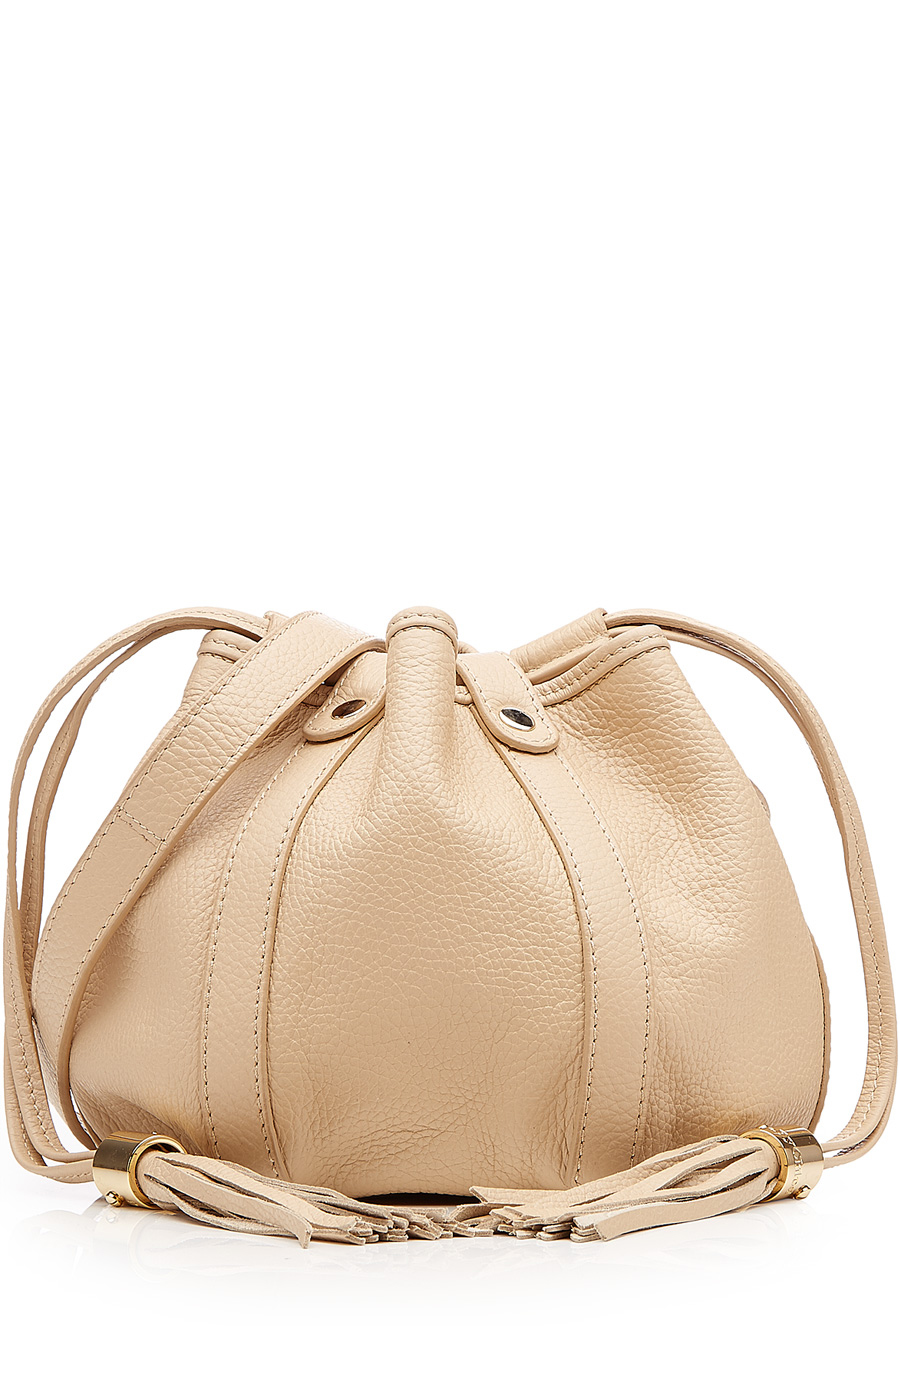 SEE BY CHLOE LEATHER DRAWSTRING BAG